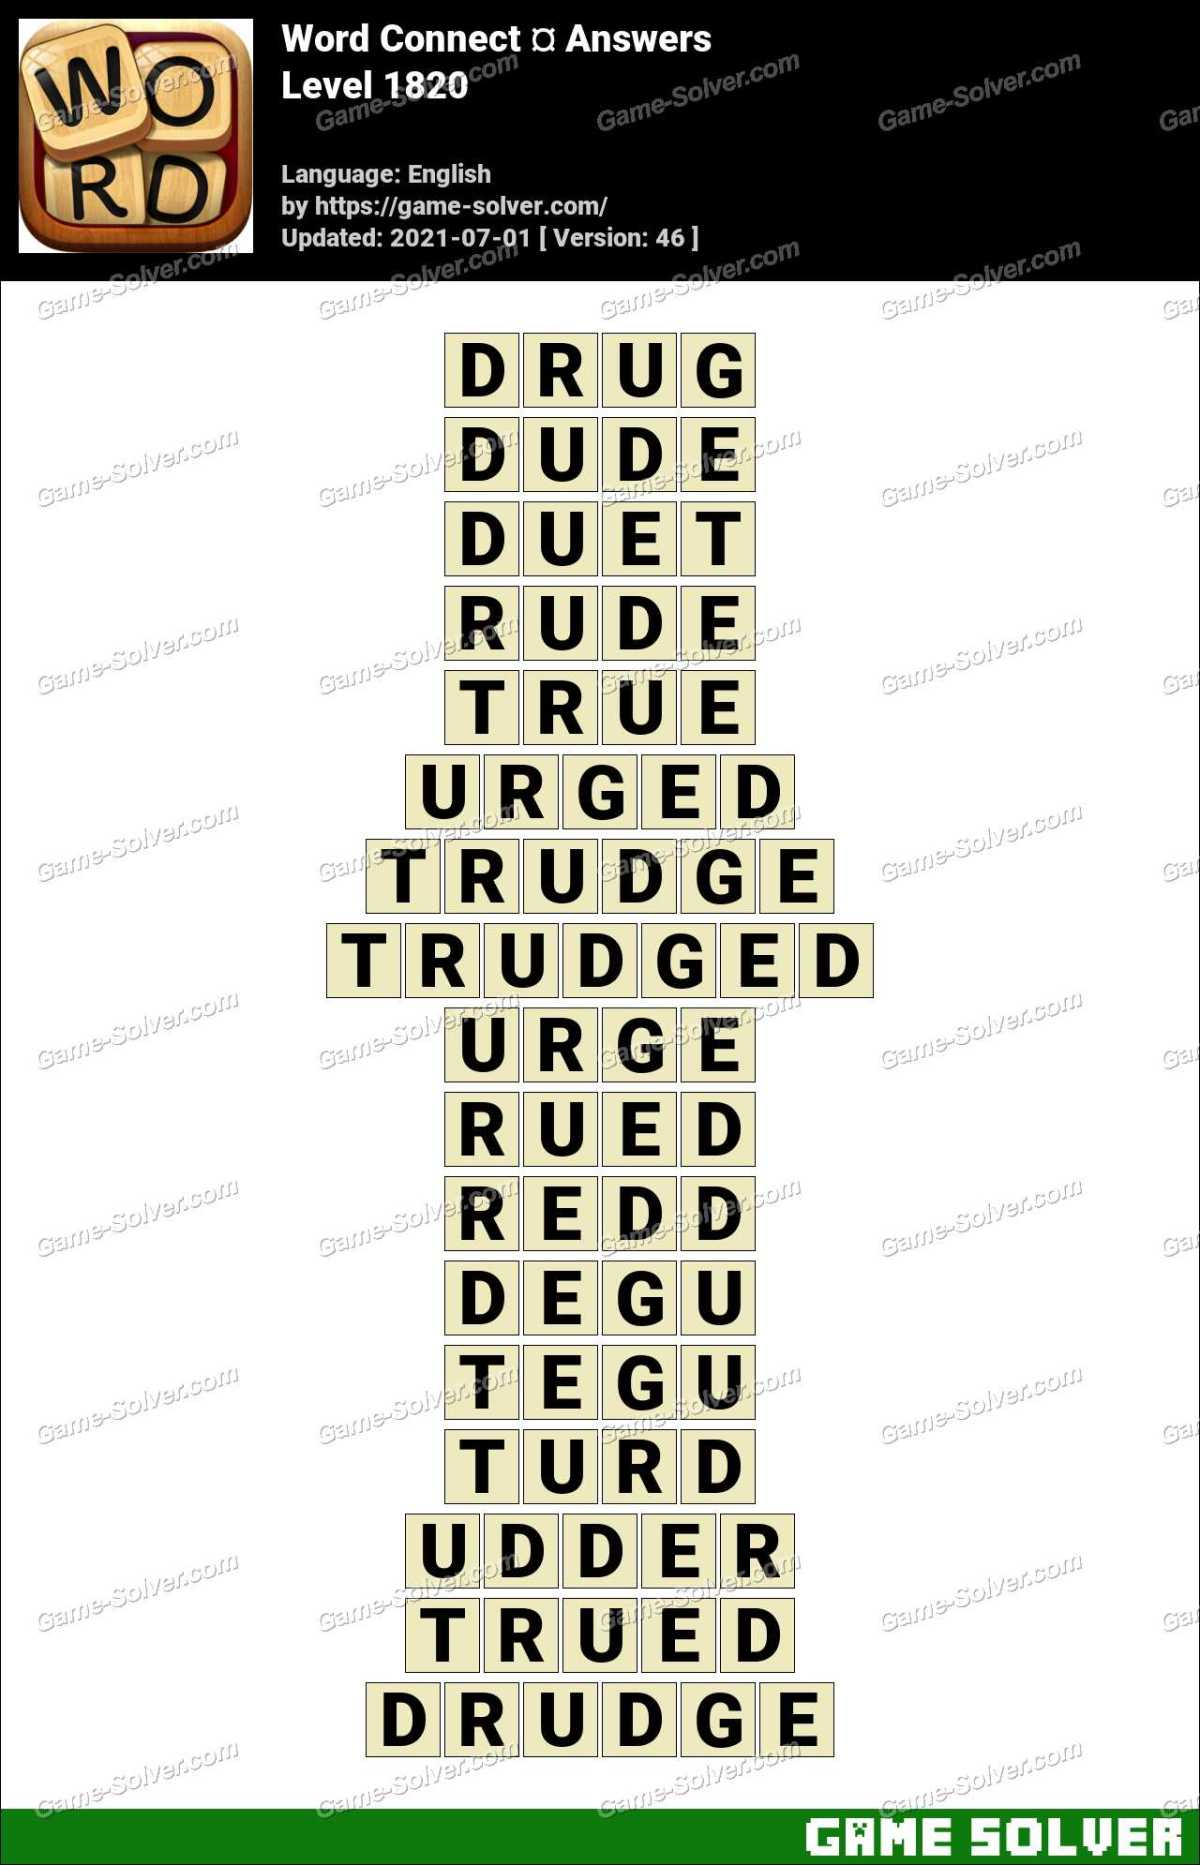 Word Connect Level 1820 Answers